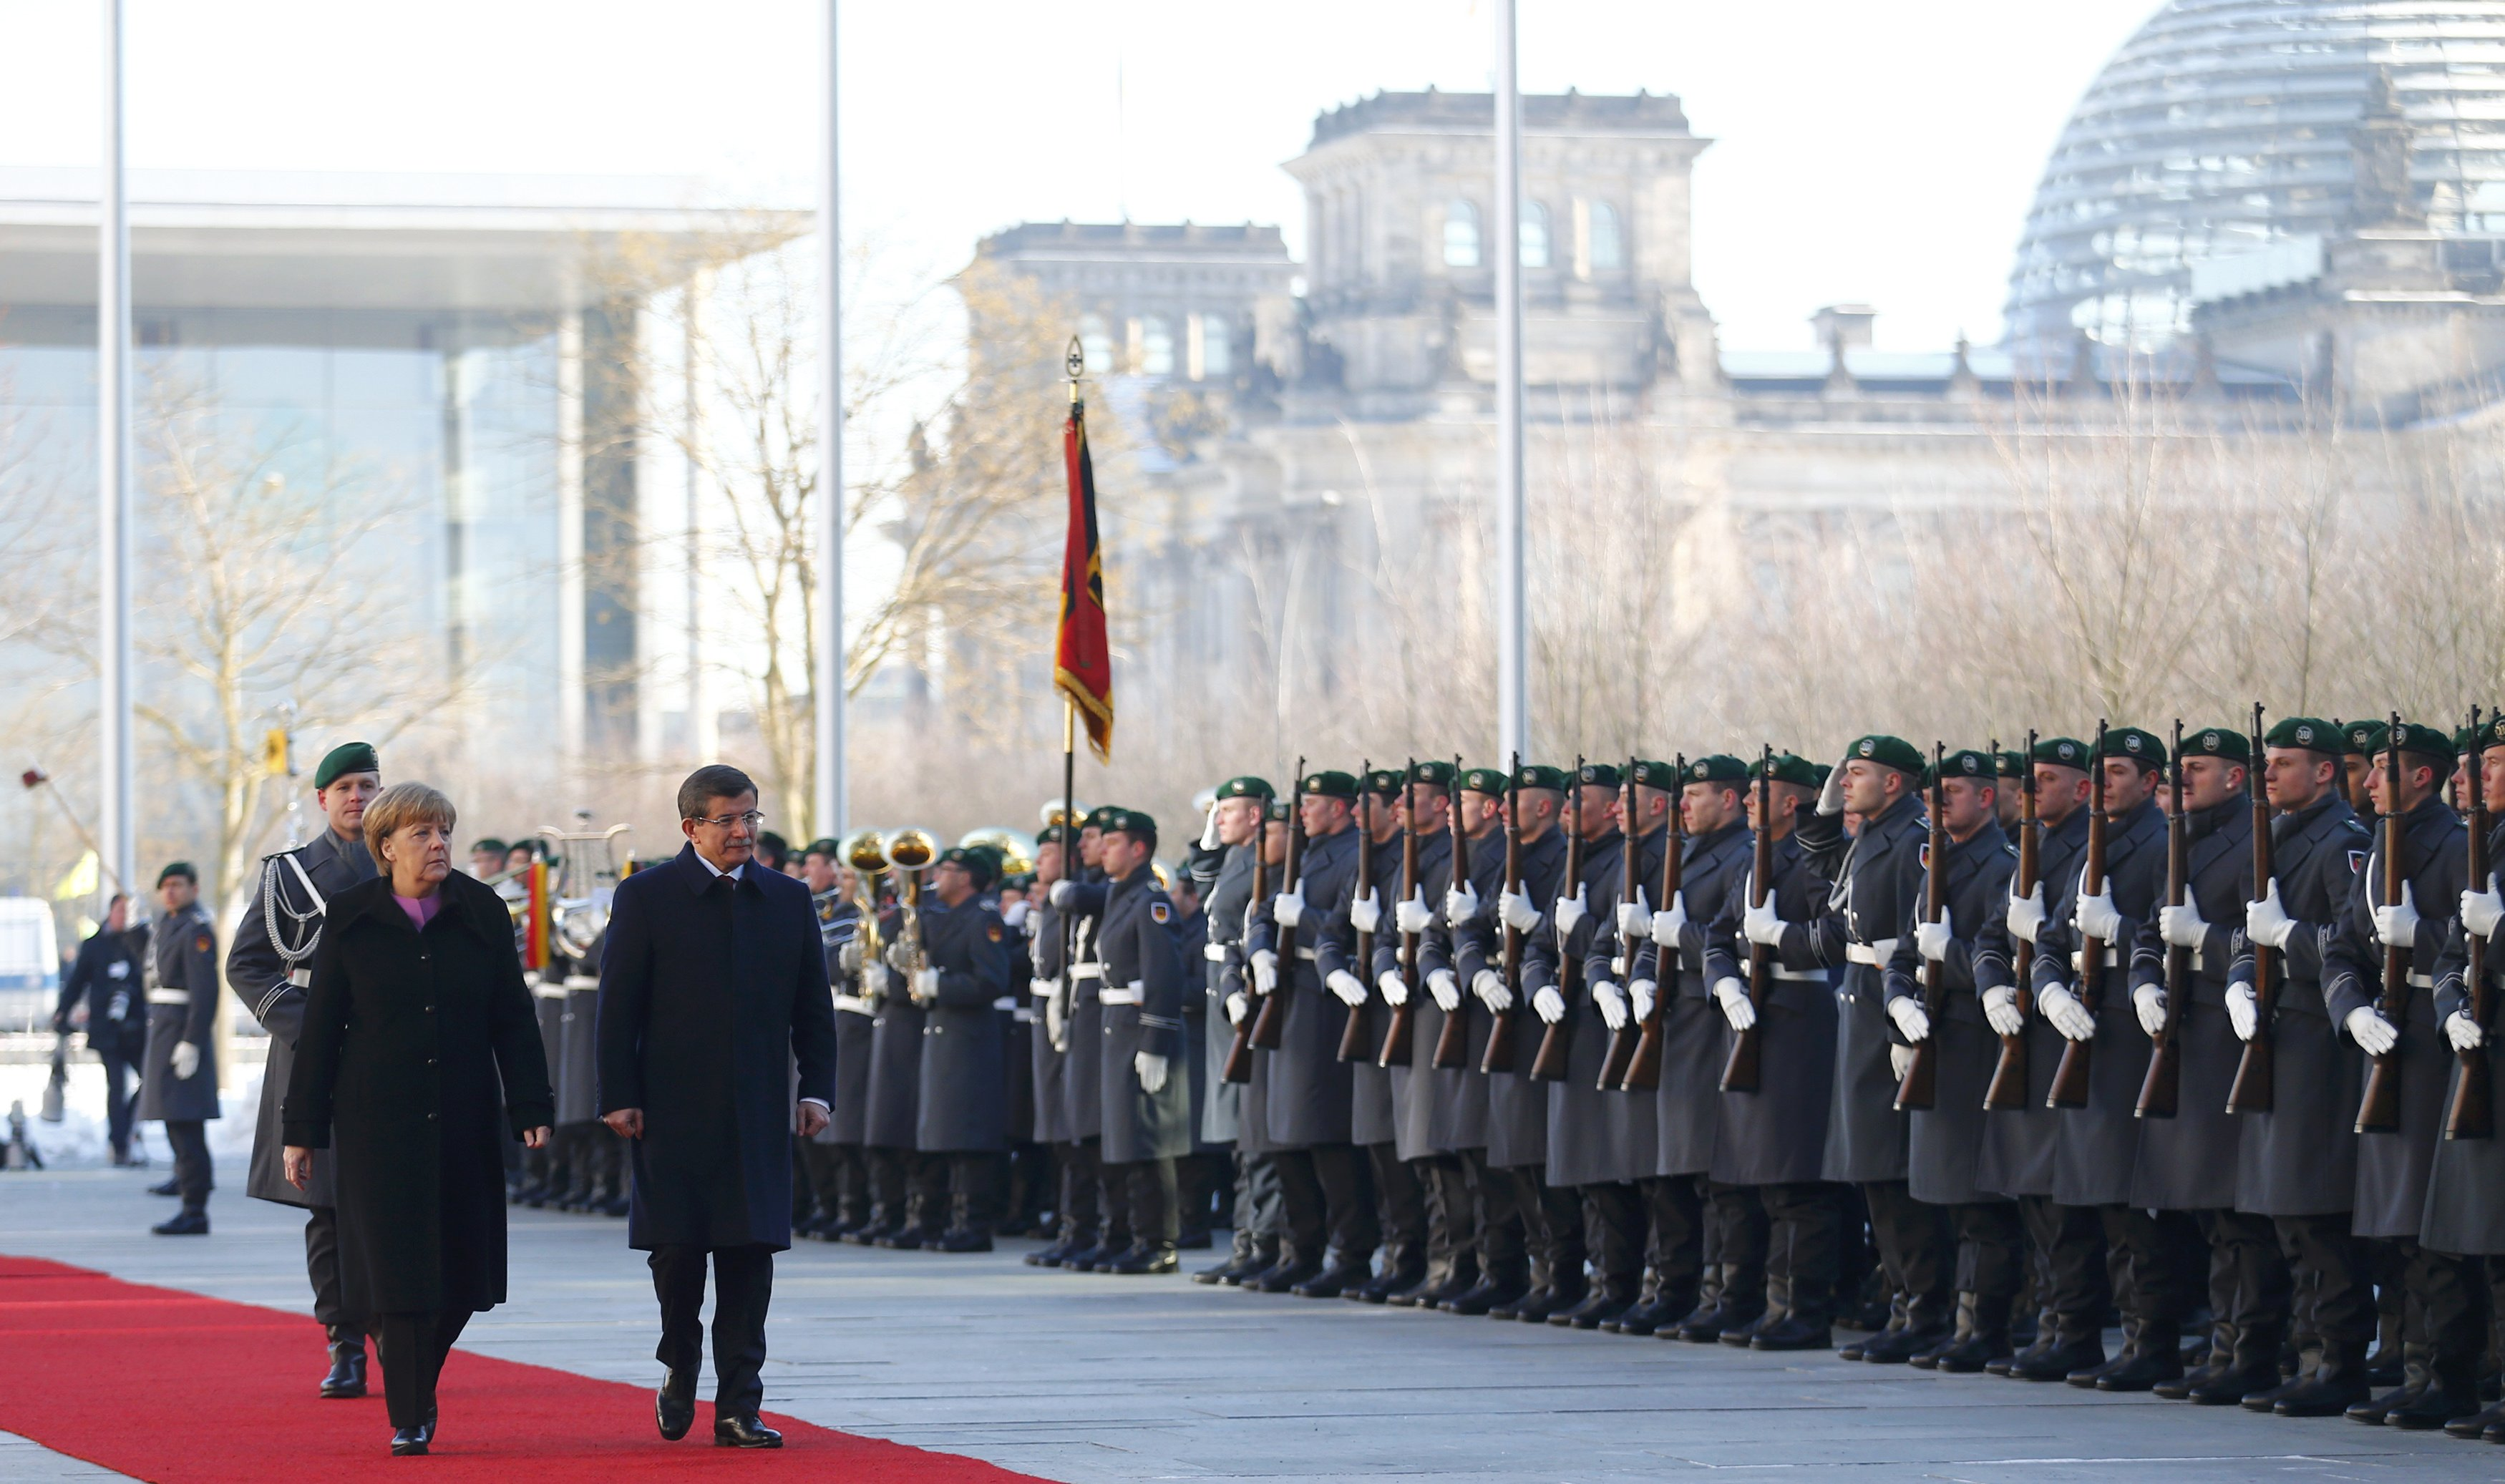 Davutoglu Merkel Berlin 2016 01 22T120306Z 1003479410 LR1EC1M0XGVVH RTRMADP 3 GERMANY TURKEY adam copy